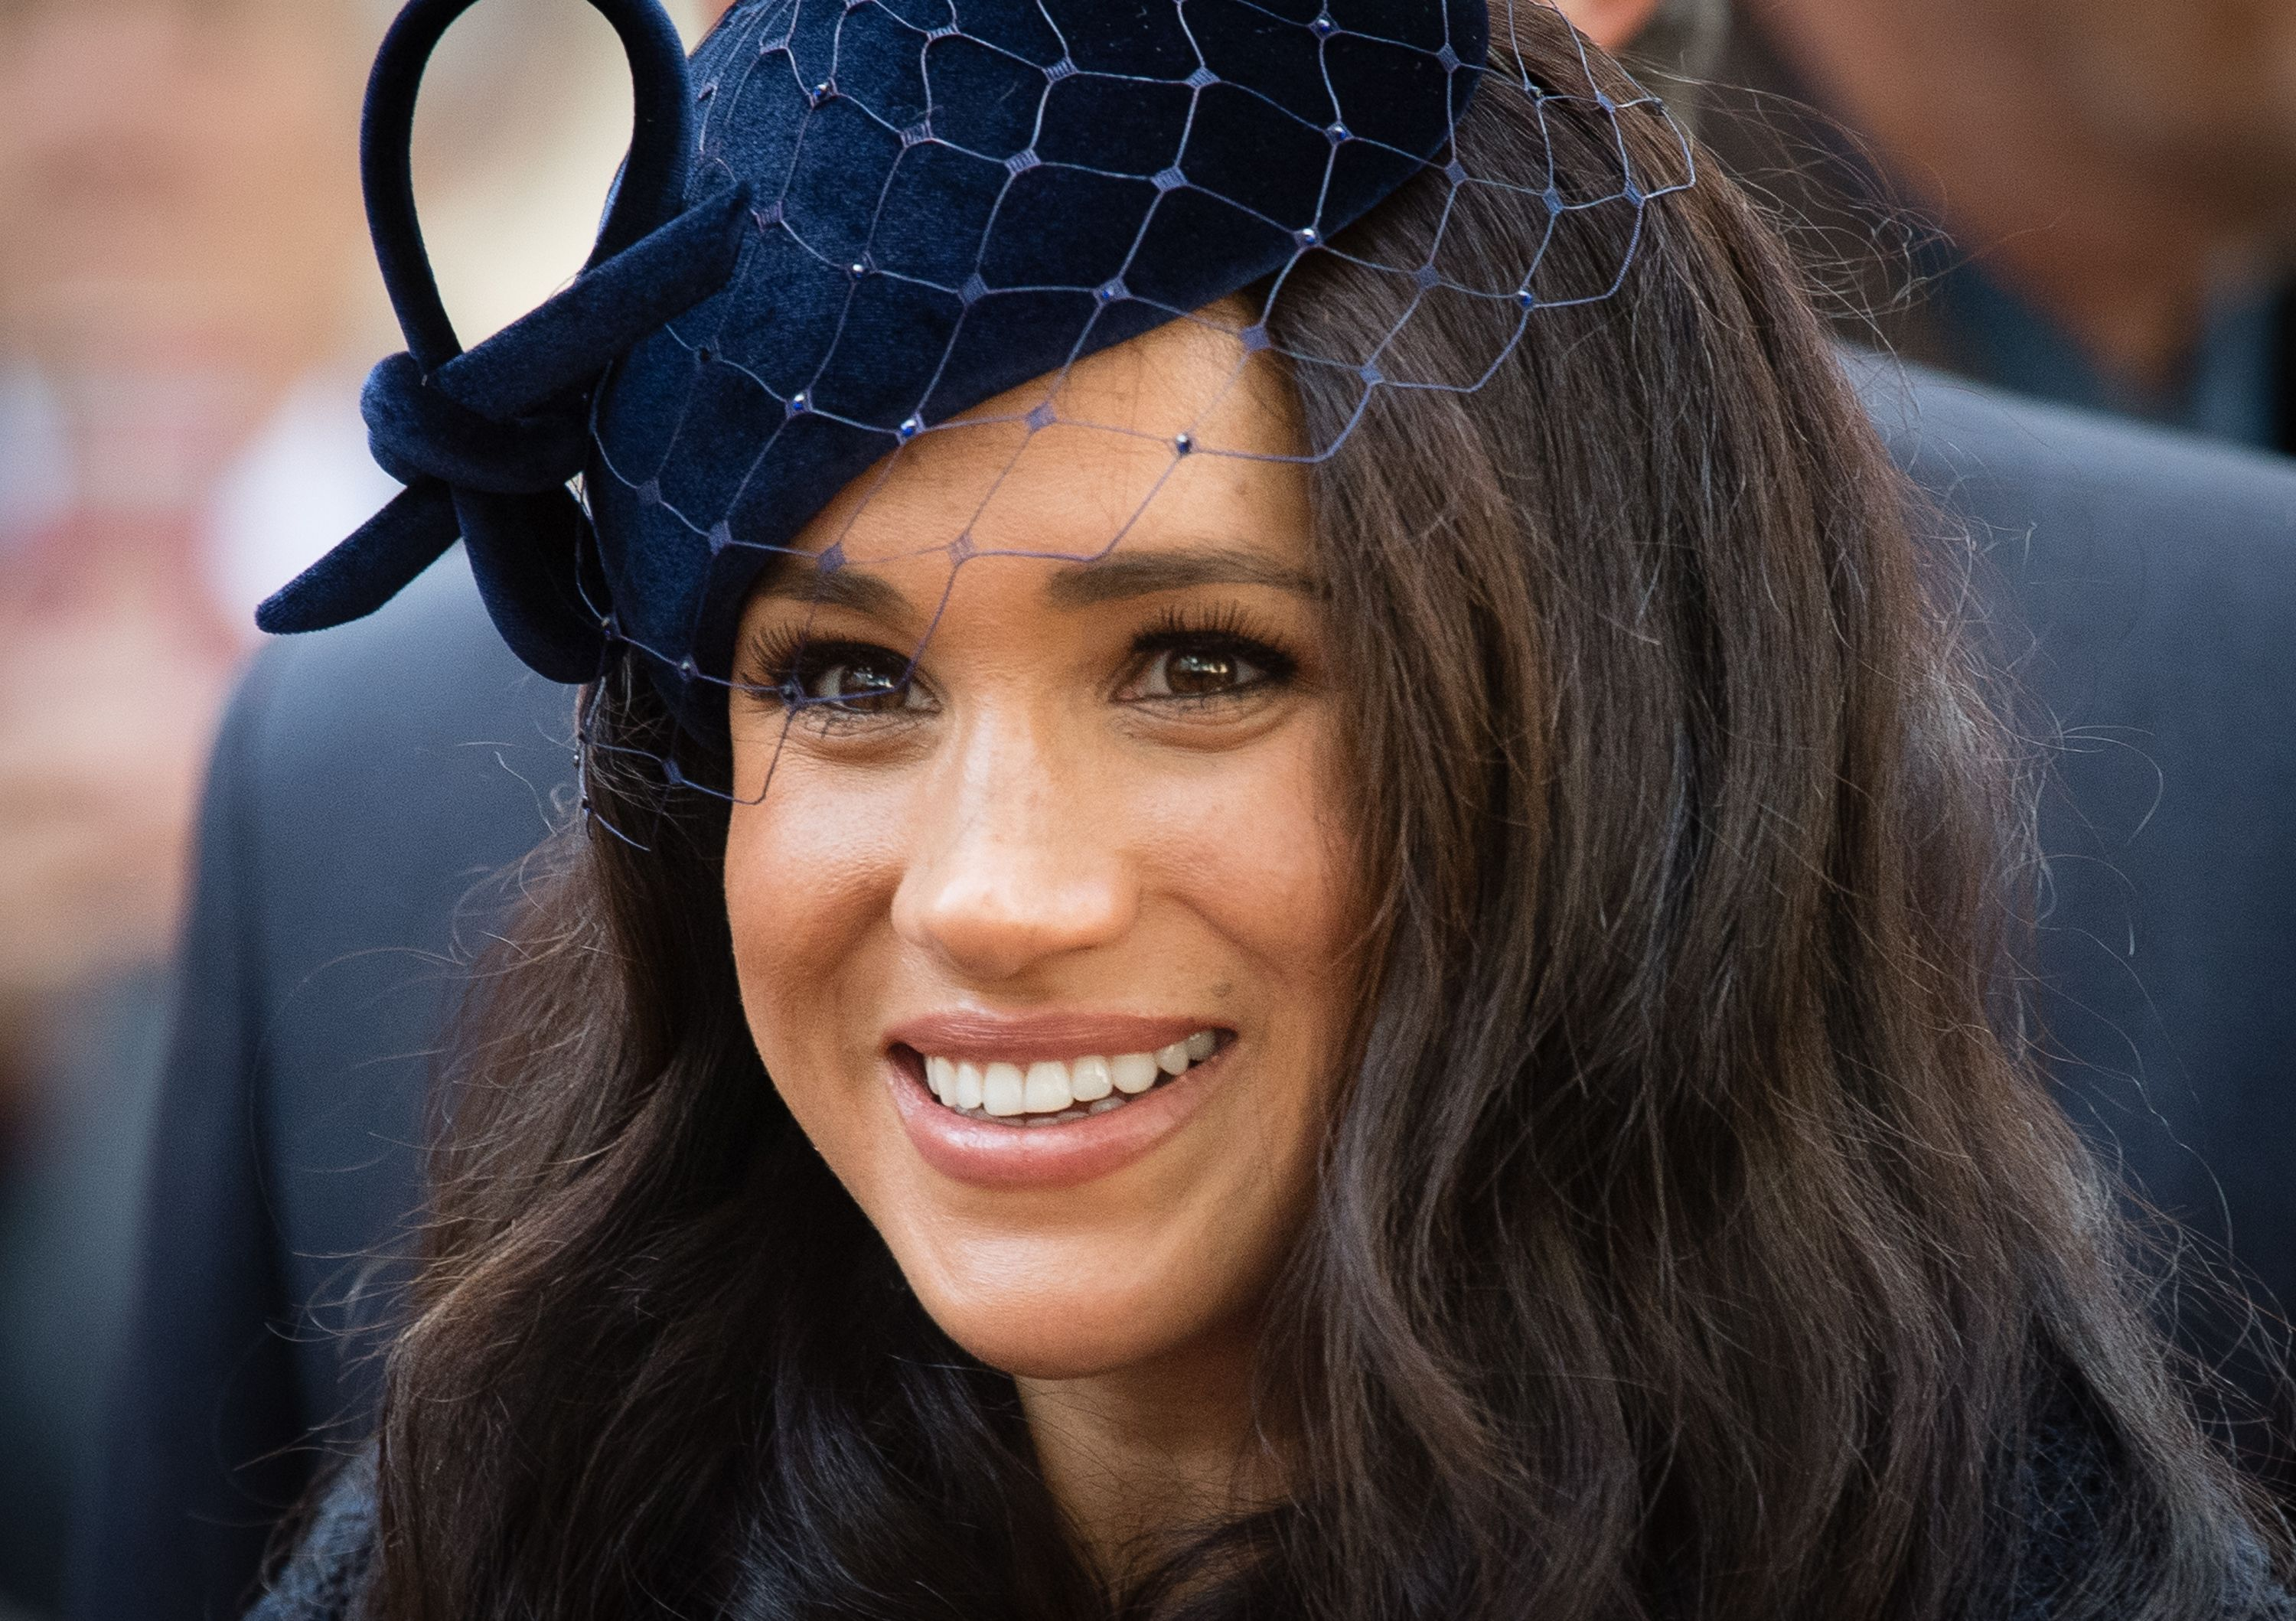 Meghan Markle shares a commemorative throwback photo from 2014 to mark Remembrance Day